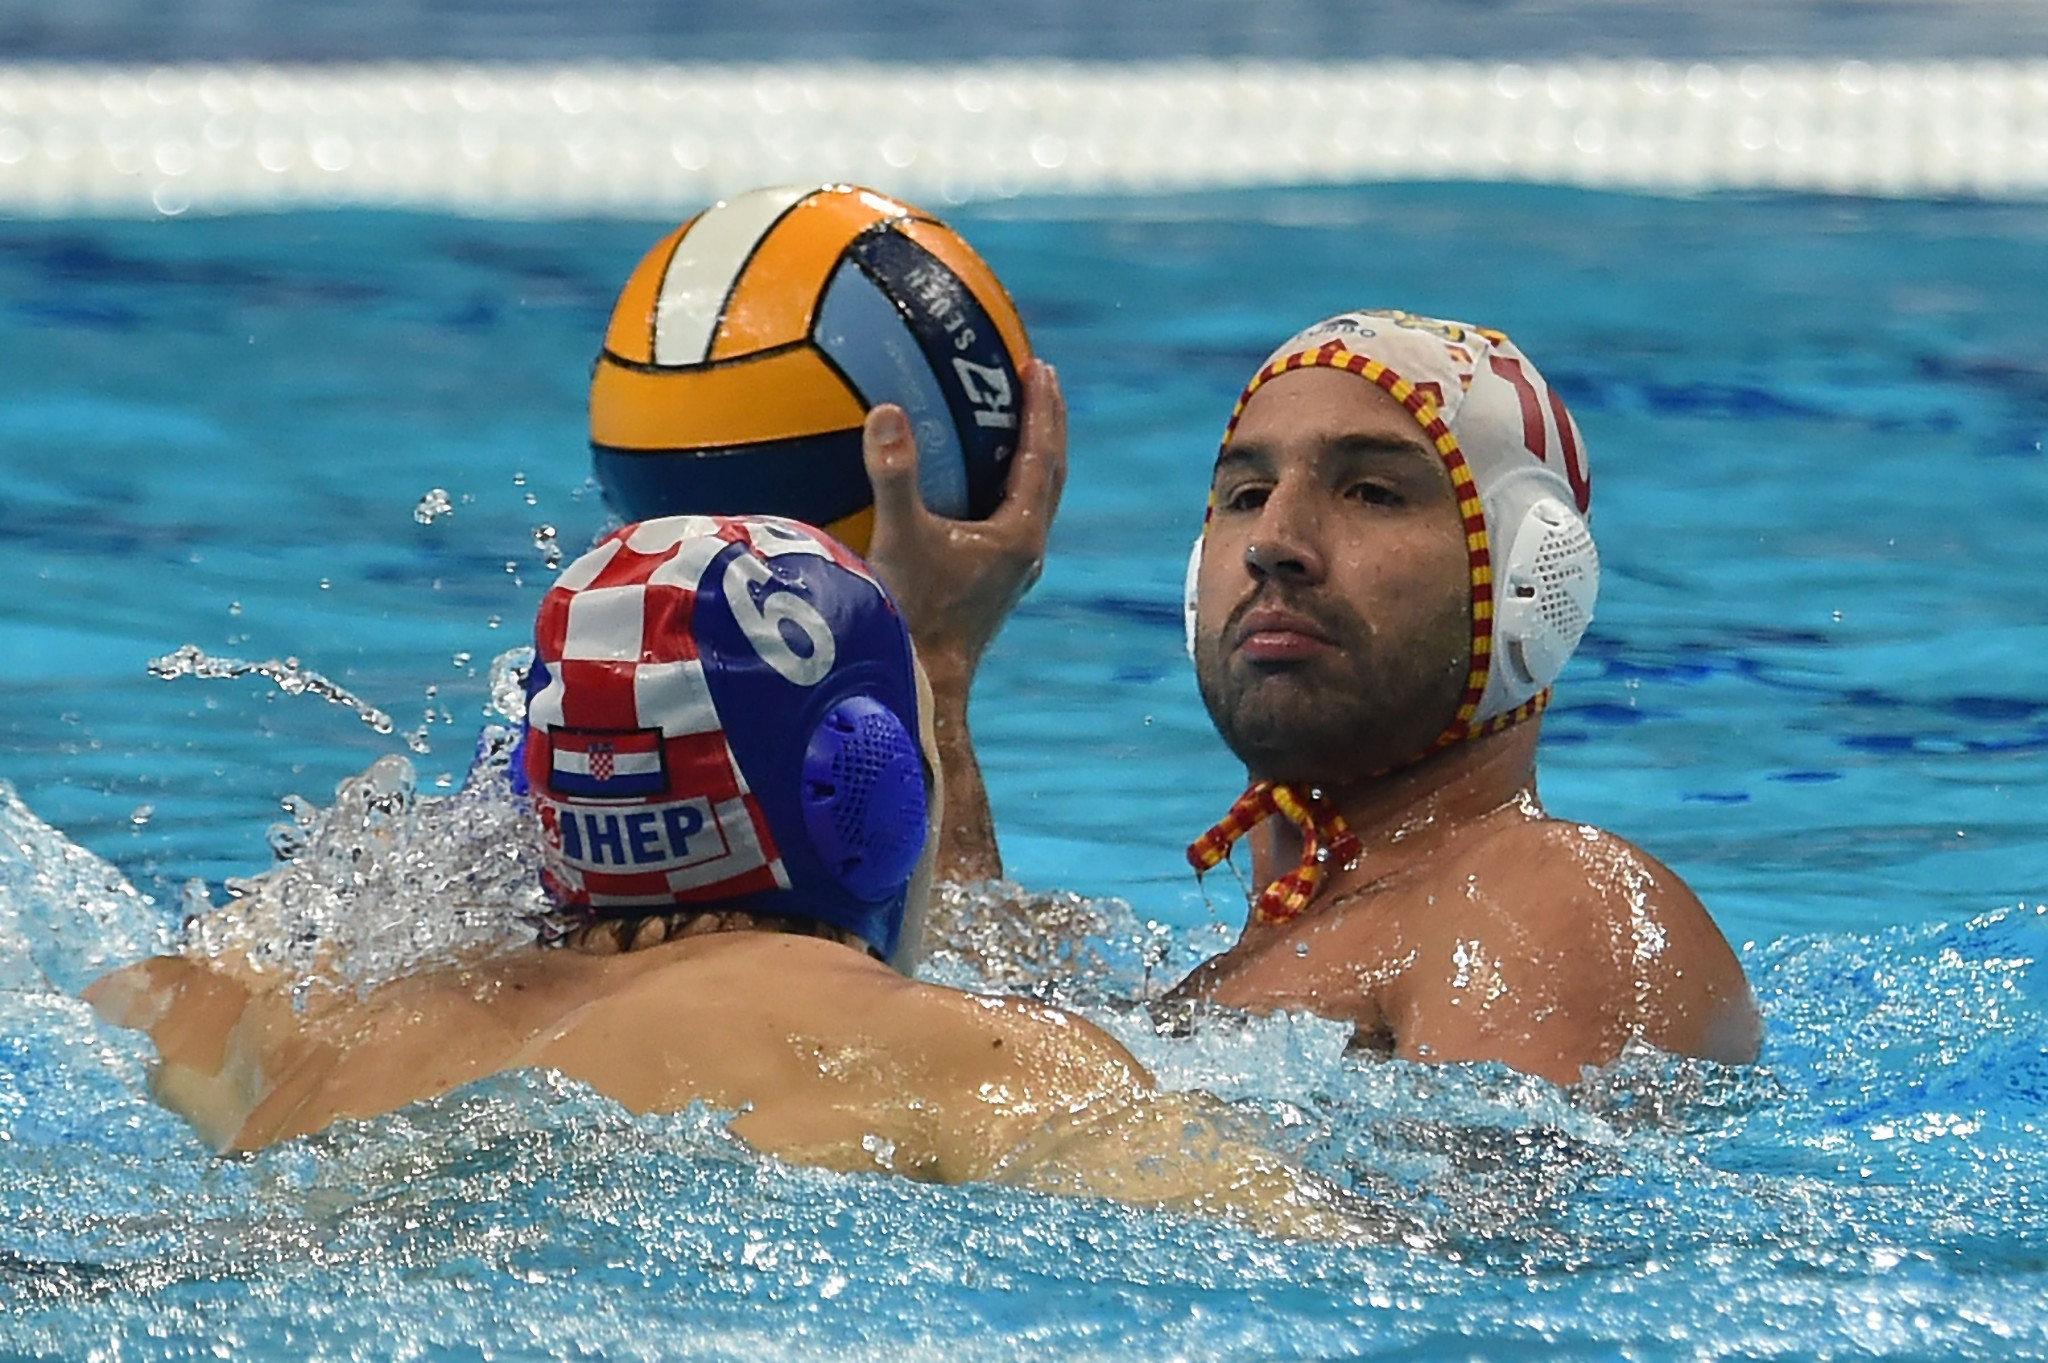 Spain edged past Croatia to reach the final of the Men's European Water Polo Championships ©Getty Images